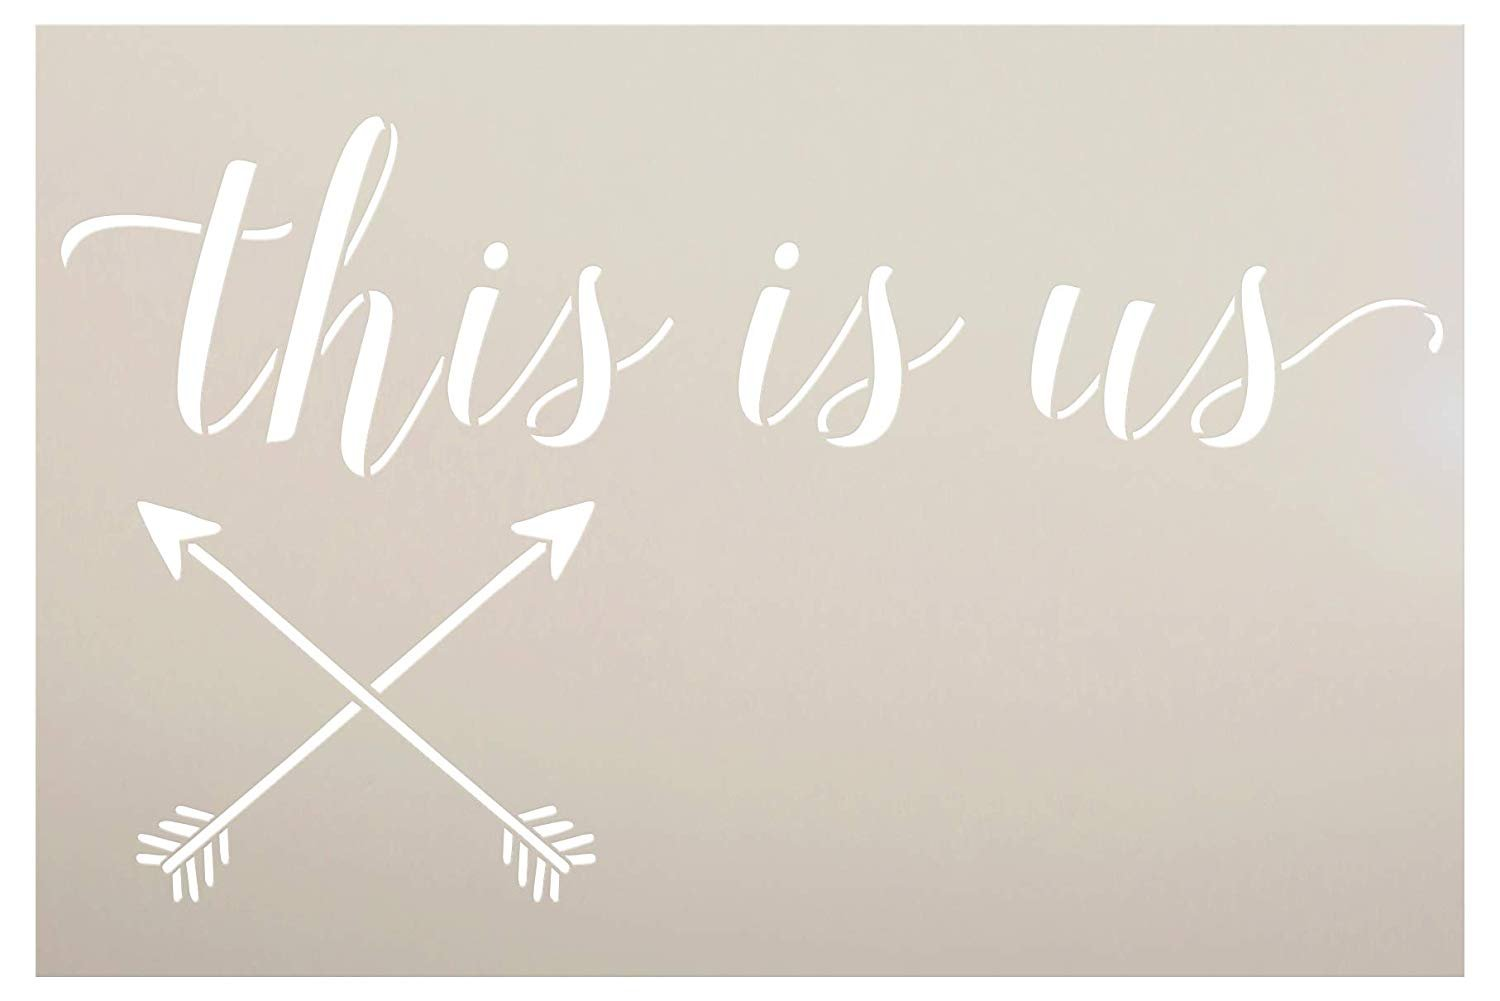 """Personalized This Is Us 2-Part Stencil with Arrows   Custom Family Name & Hometown   DIY Script Home Decor   Wedding Anniversary Gift   Craft & Paint Wood Signs   Reusable Mylar Template   24"""" x 16"""""""